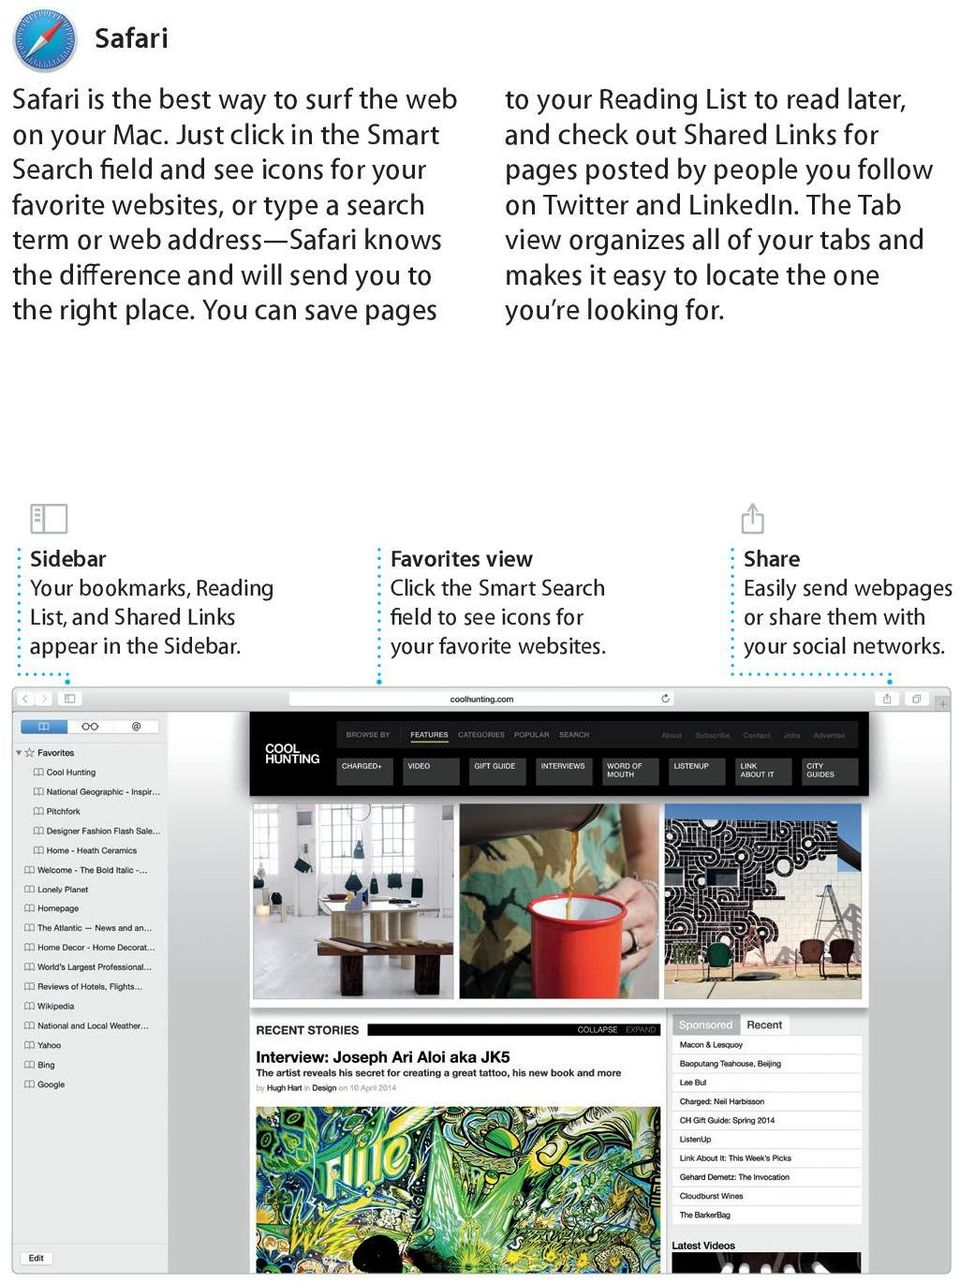 place. You can save pages to your Reading List to read later, and check out Shared Links for pages posted by people you follow on Twitter and LinkedIn.